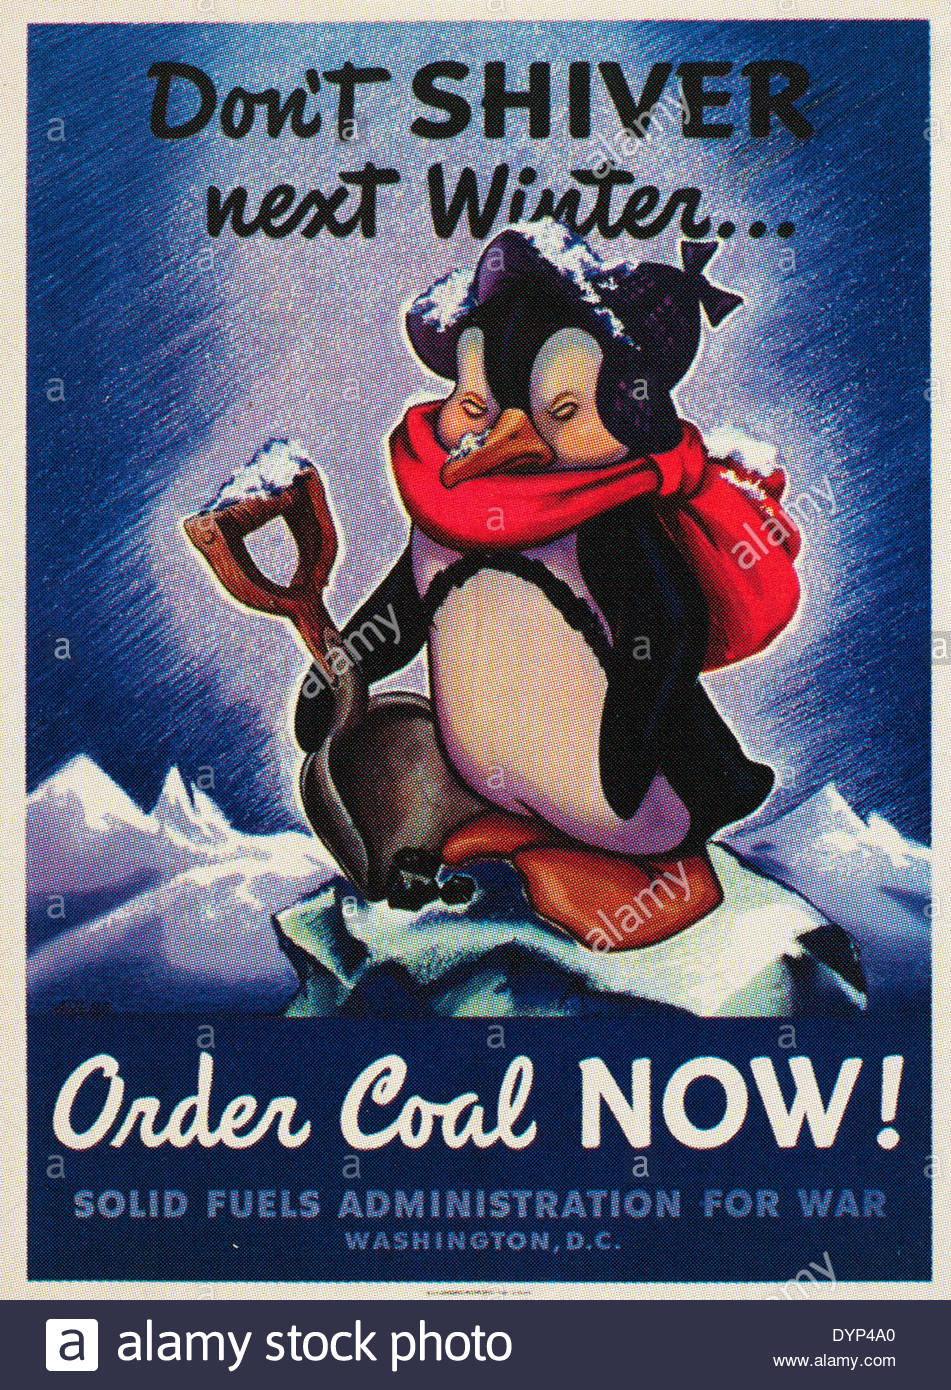 World war two poster issued by the solid fuels administration to order coal early in preparation. EDITORIAL ONLY - Stock Image